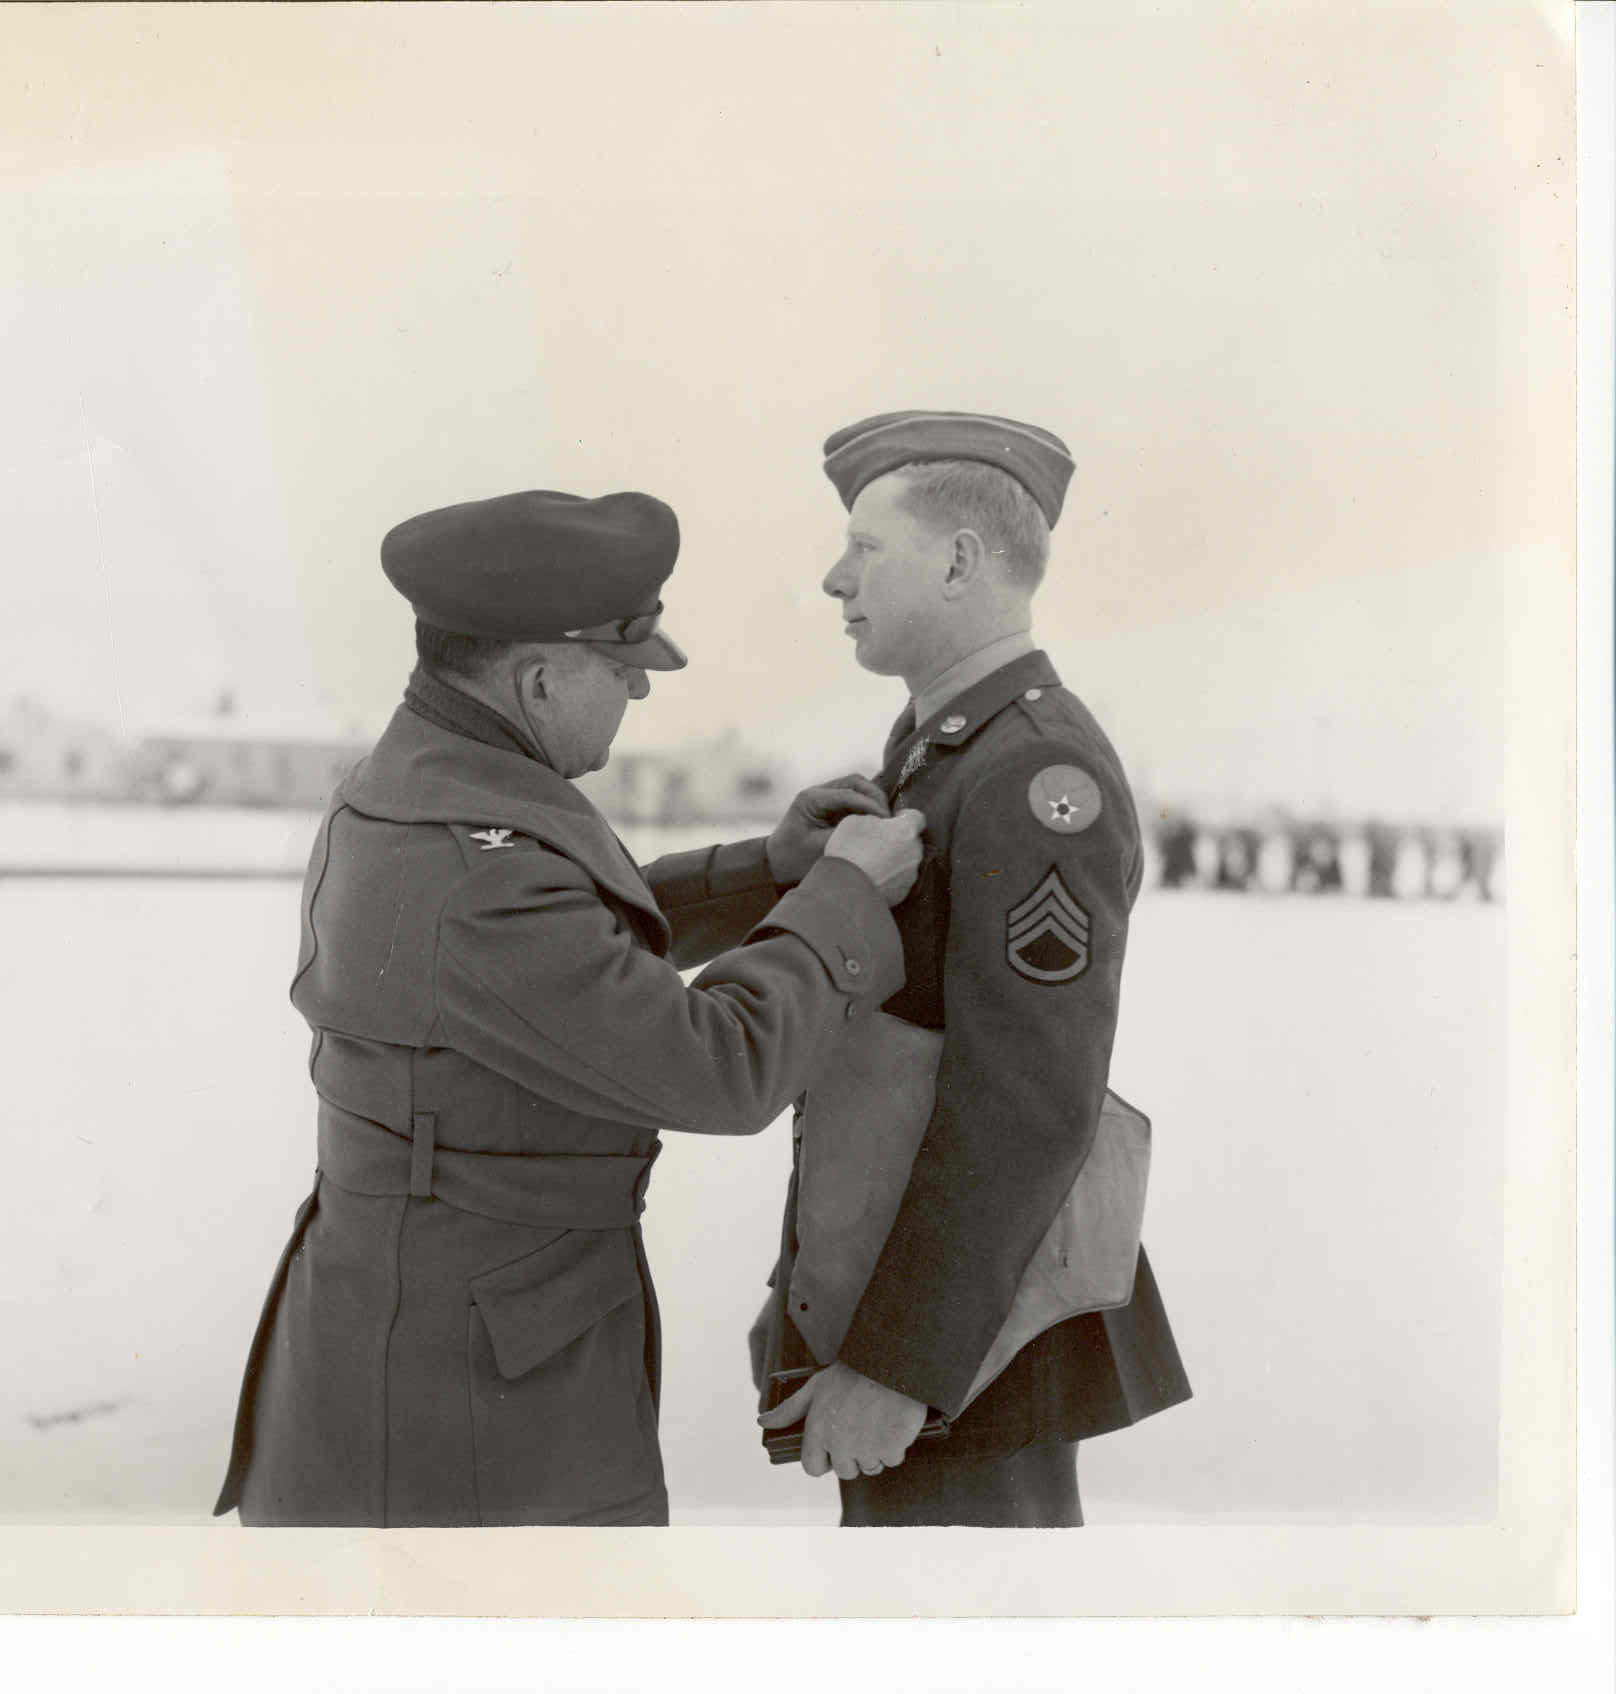 """Everett (Pete) Stults, a gunner in World War II, receiving a medal.  Photo provided to Orchestra of Southern Utah by Nina Hansen, daughter-in-law of Stults. Nina Hansen is principal cellist with the Orchestra of Southern Utah and perform """"Kol Nidrei"""" by Max Bruch at the performance previewed in the attached report.   Photo courtesy of Allen and Kristin Butt per Orchestra of Southern Utah, St. George News"""